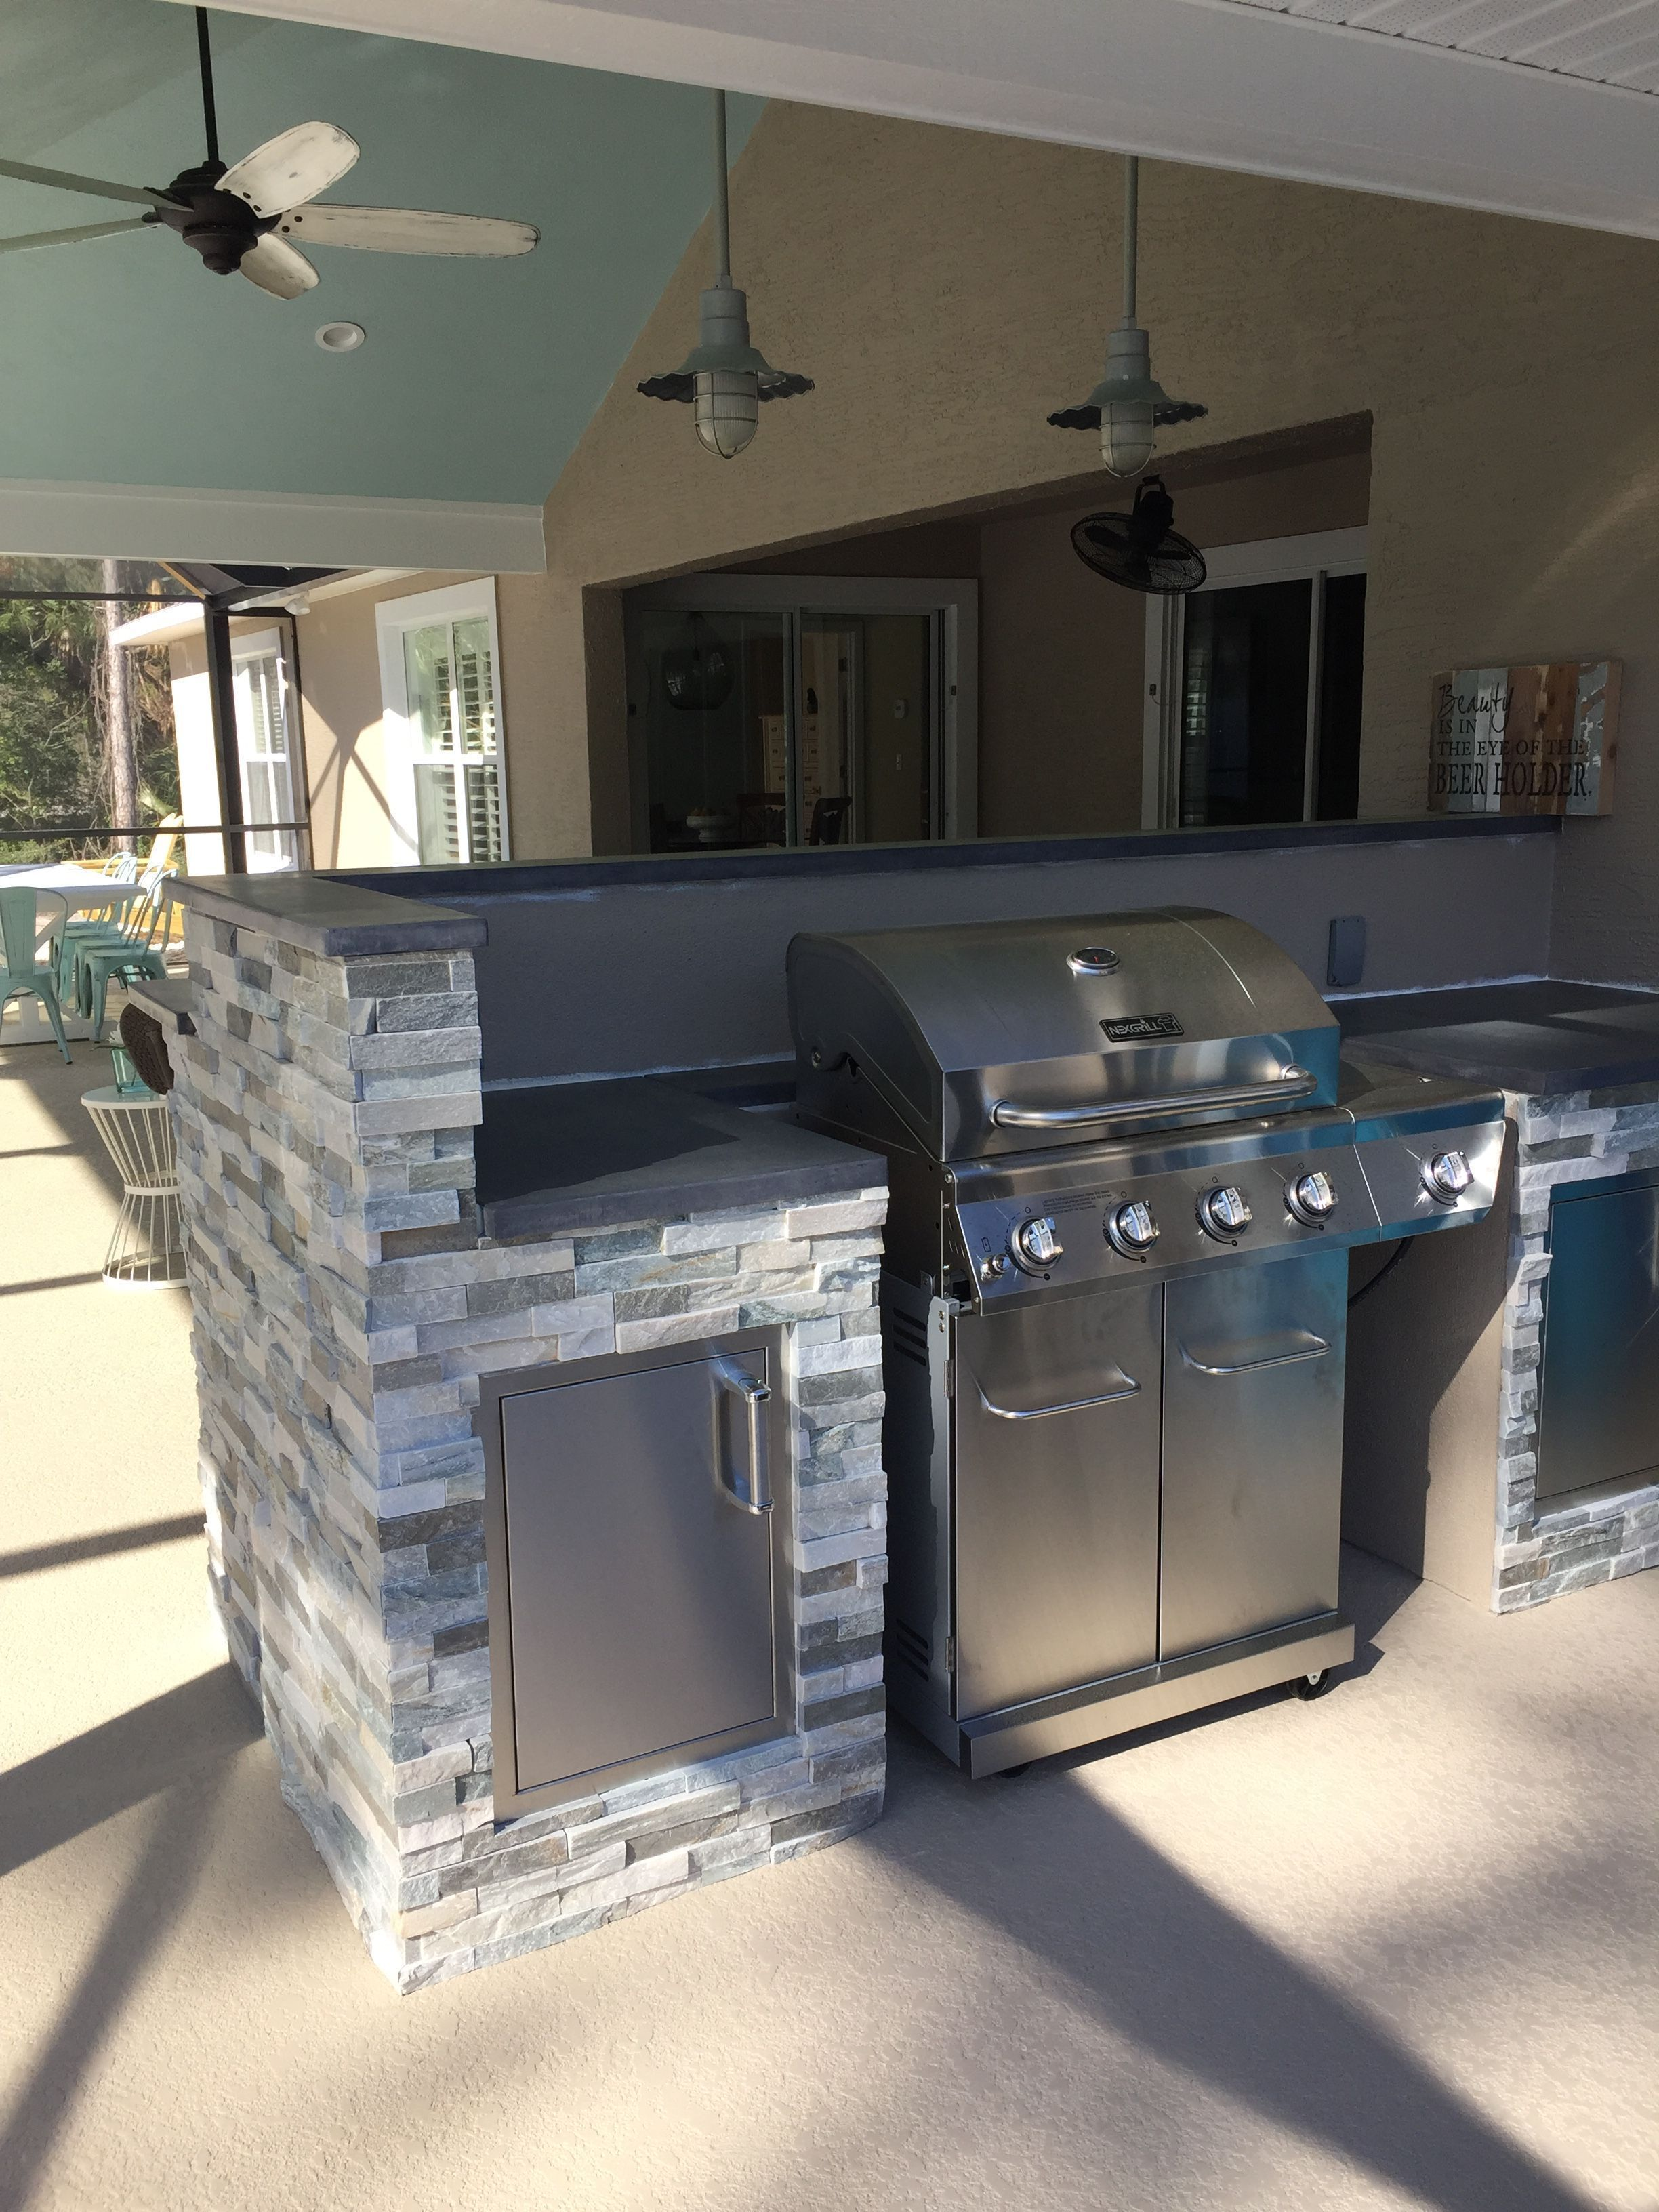 Inspirations Outdoor Kitchen Ideas For Small Space On A Budget Are Needed Especially When You Outdoor Kitchen Design Outdoor Kitchen Outdoor Kitchen Appliances